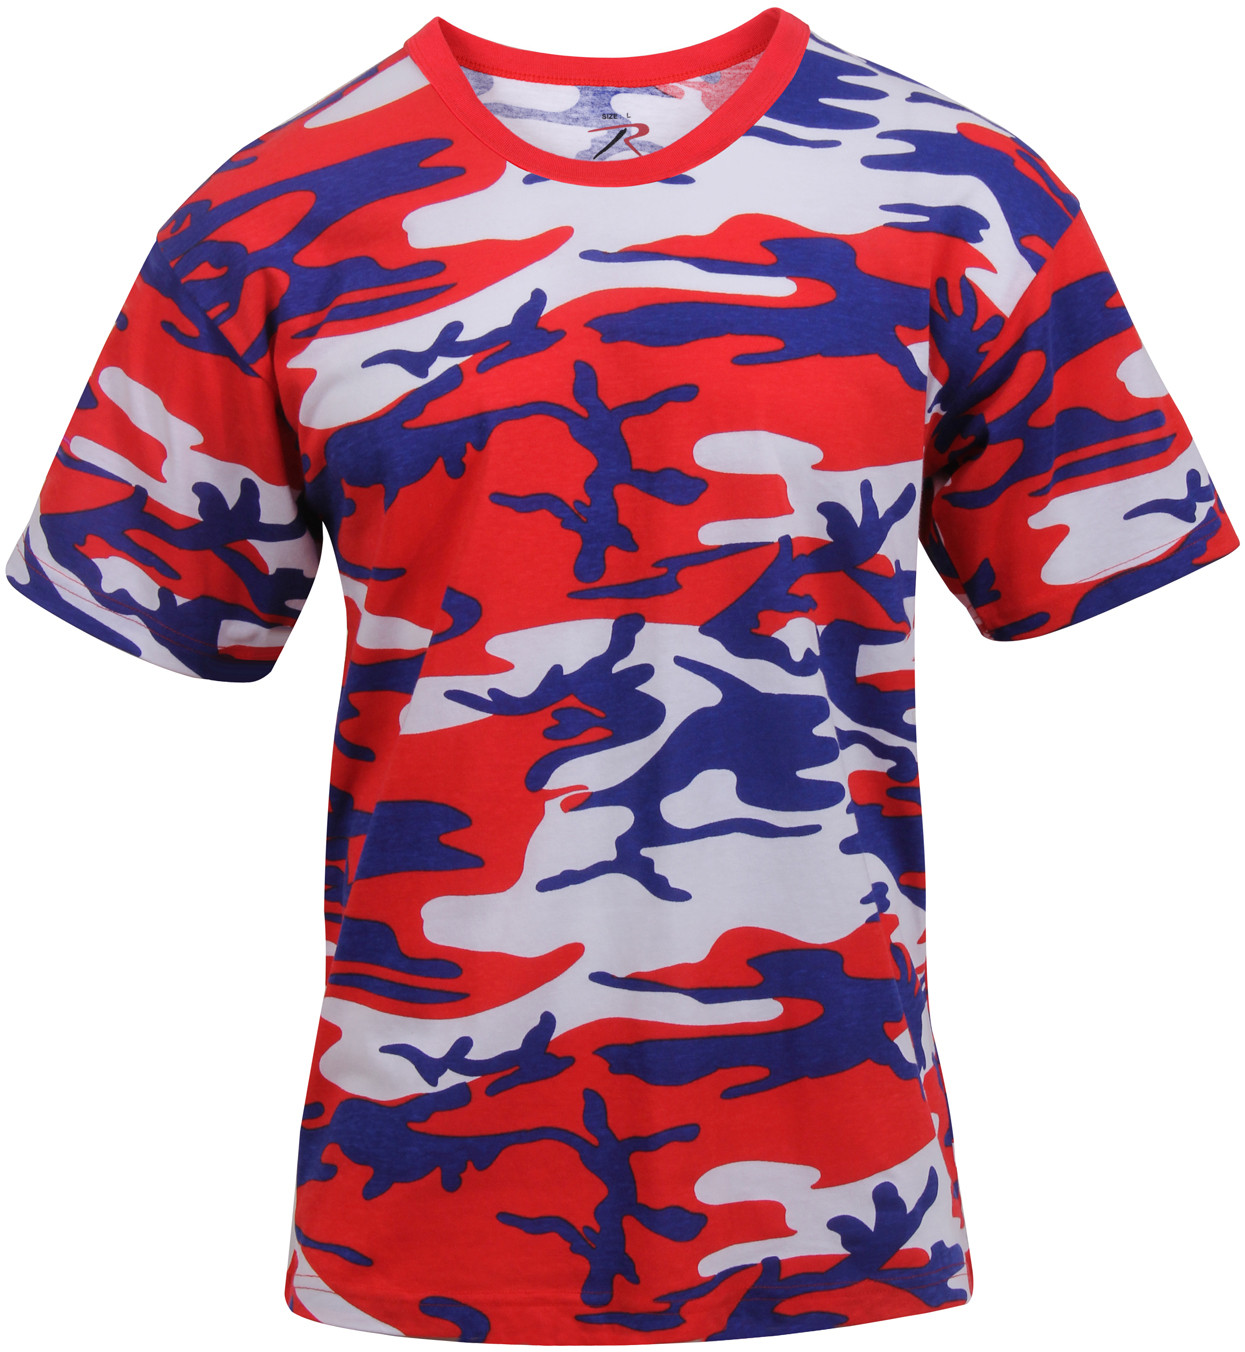 More Views. Red White Blue Camouflage Military Short Sleeve T-Shirt ... f7772558f84